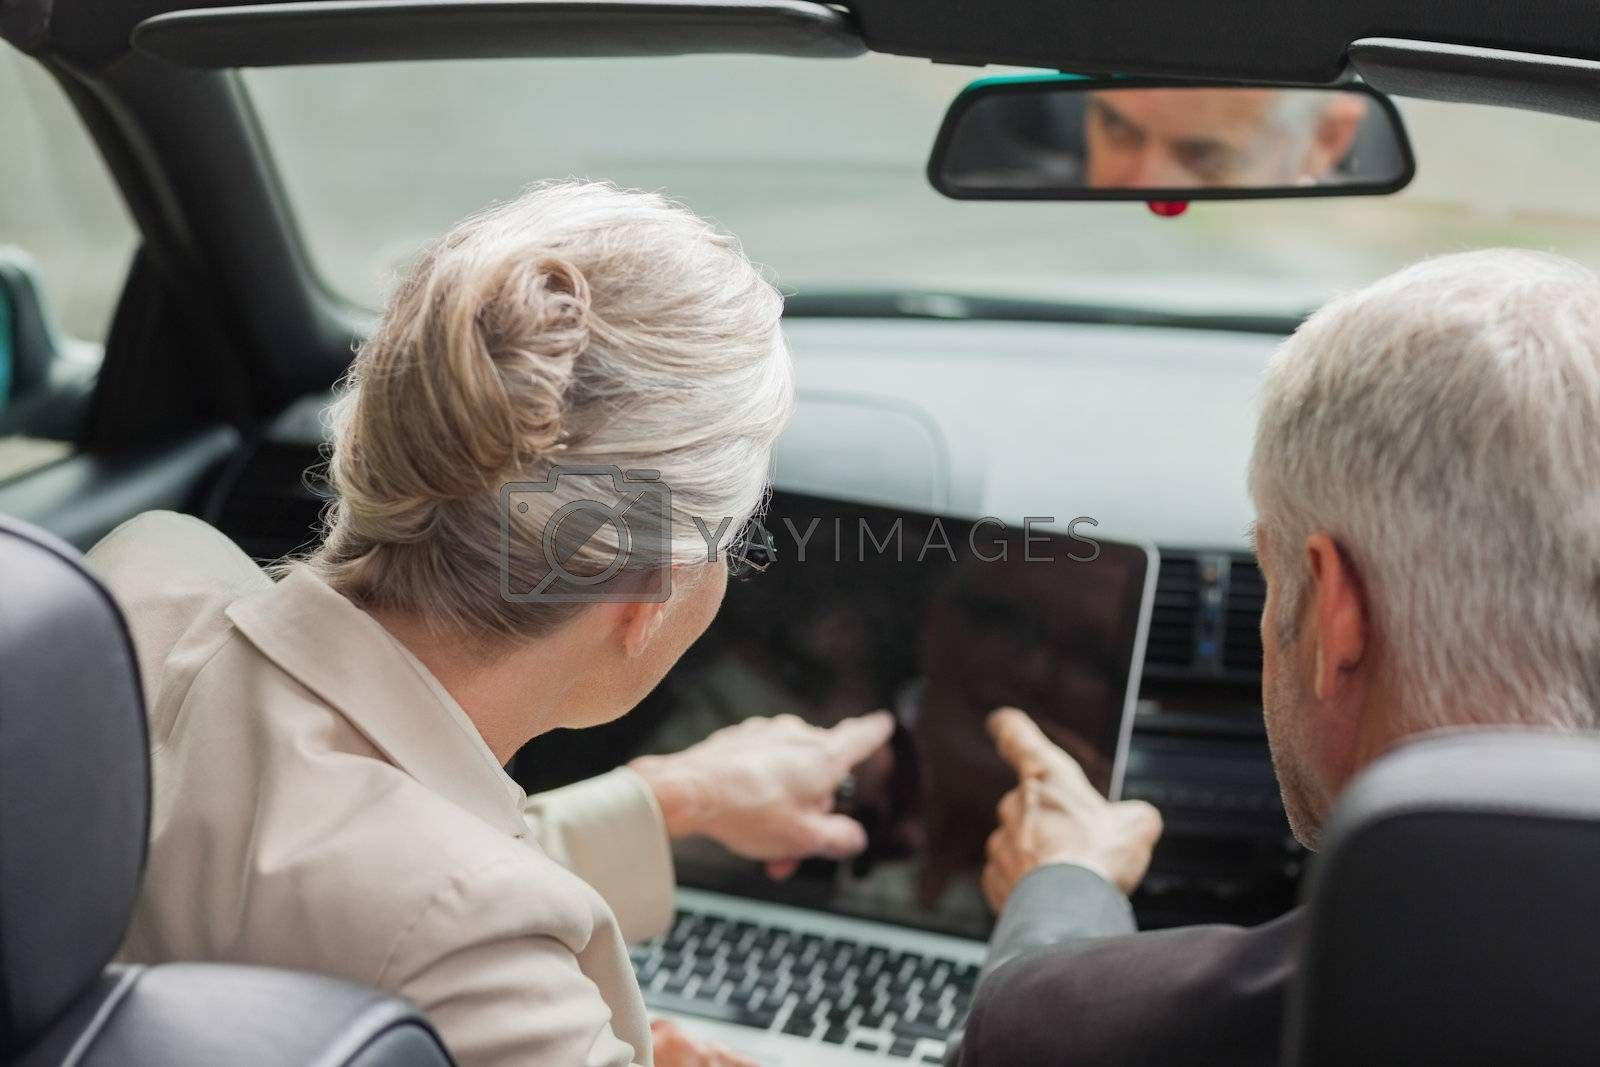 Business people working together on laptop in classy cabriolet by Wavebreakmedia